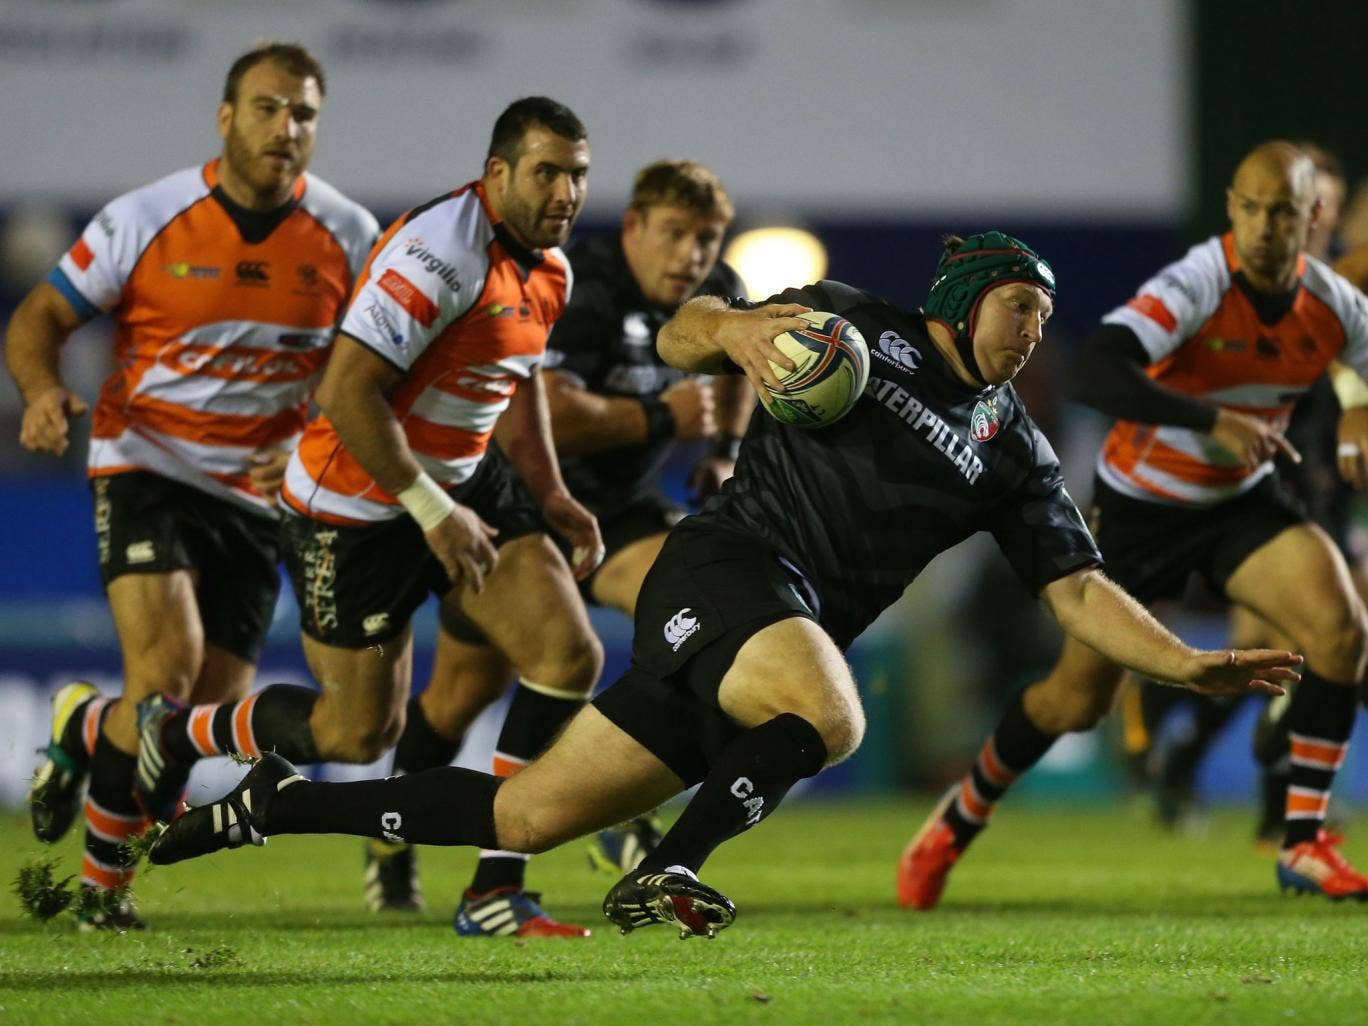 Leicester's Thomas Waldrom breaks through the Treviso defence